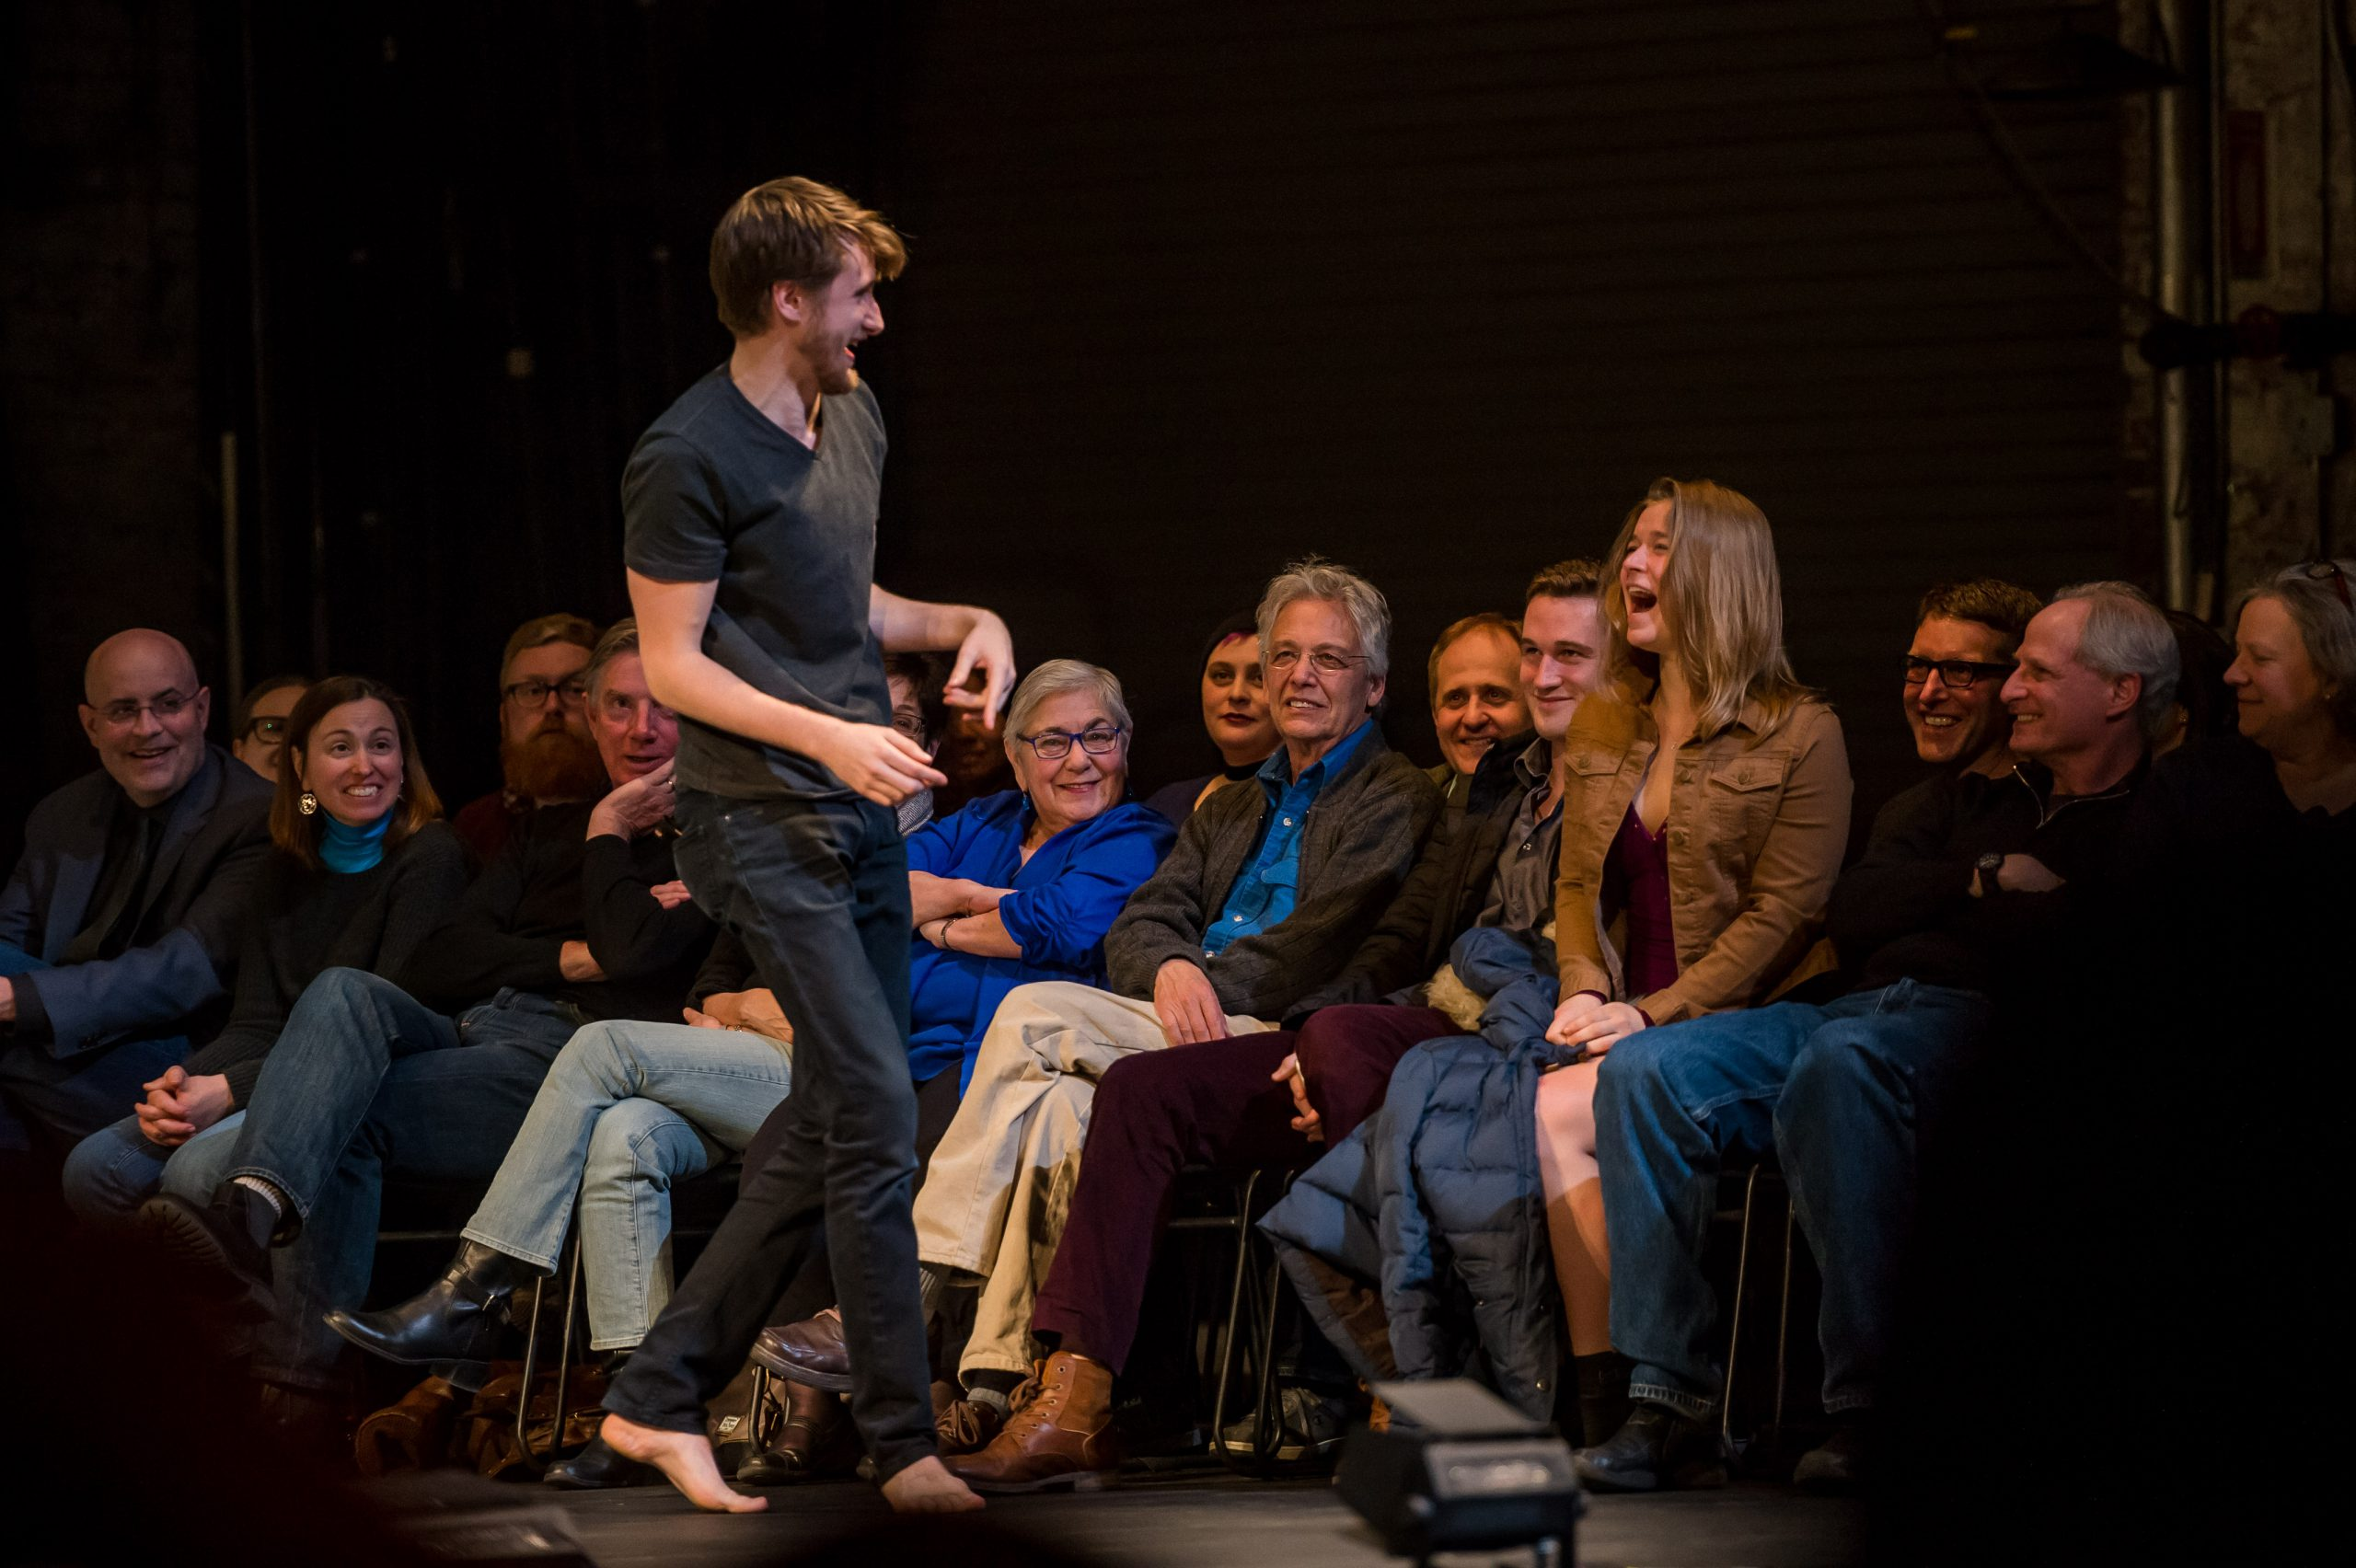 Actor interacting with laughing woman in the audience